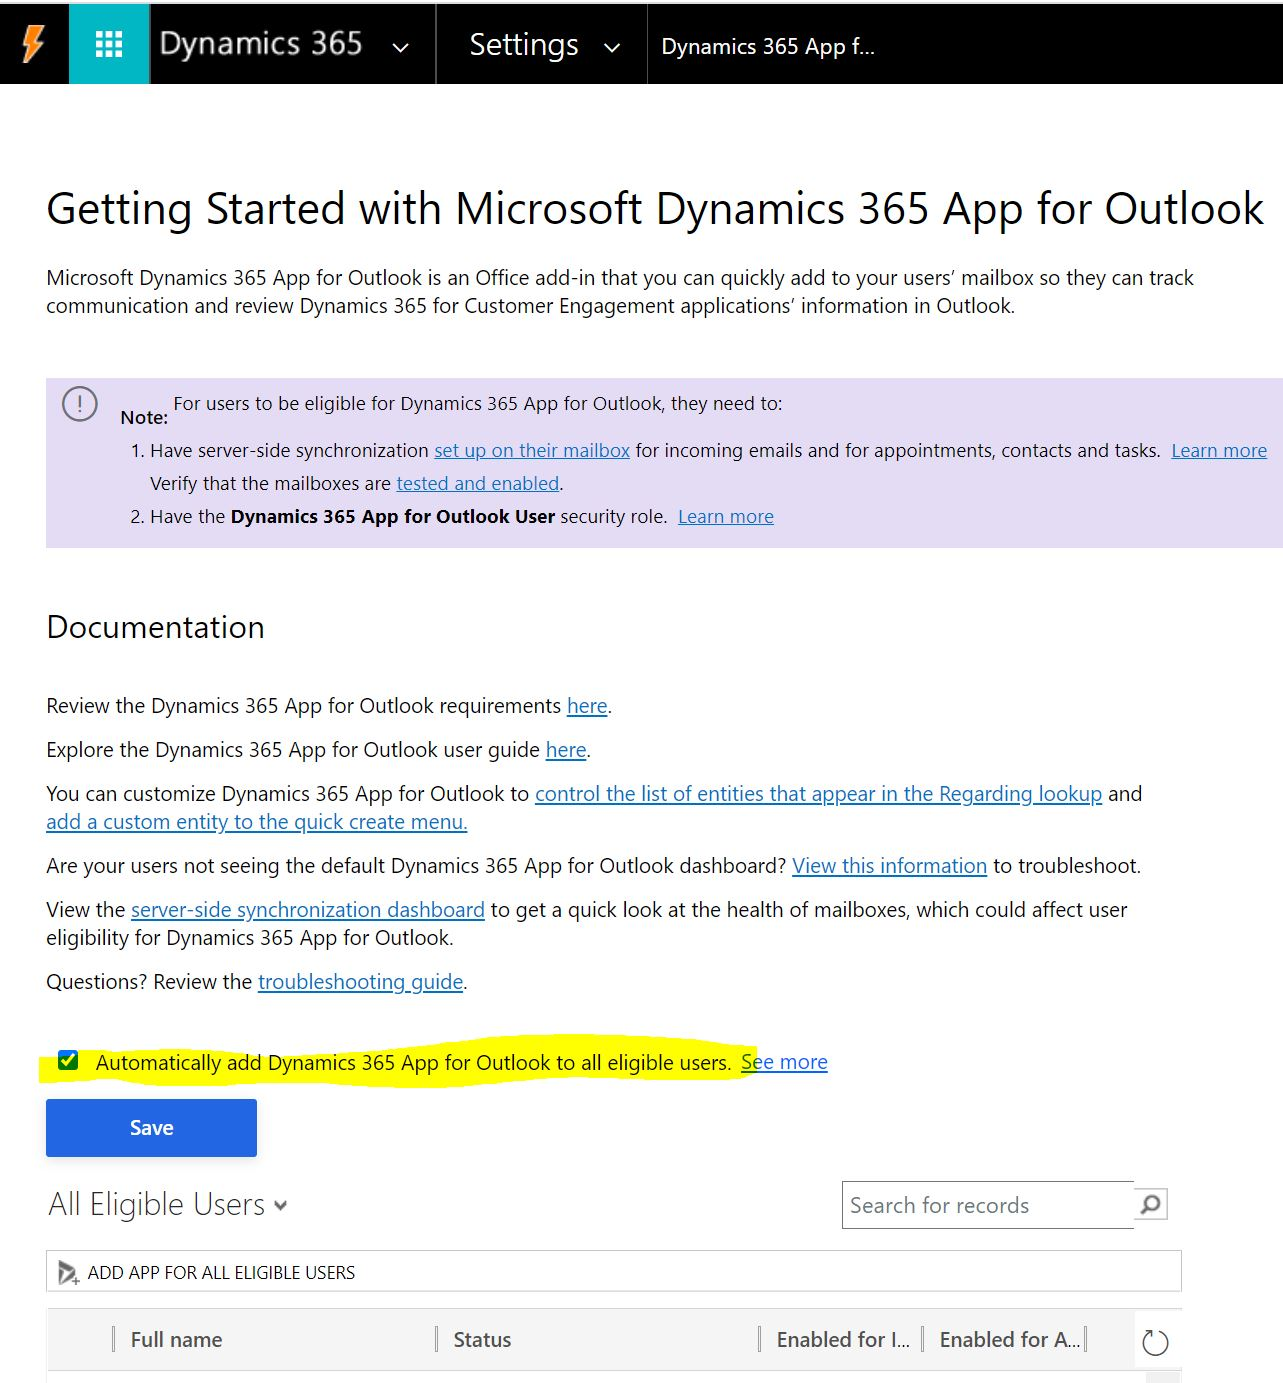 Dynamics 365 App for Outlook: push to users